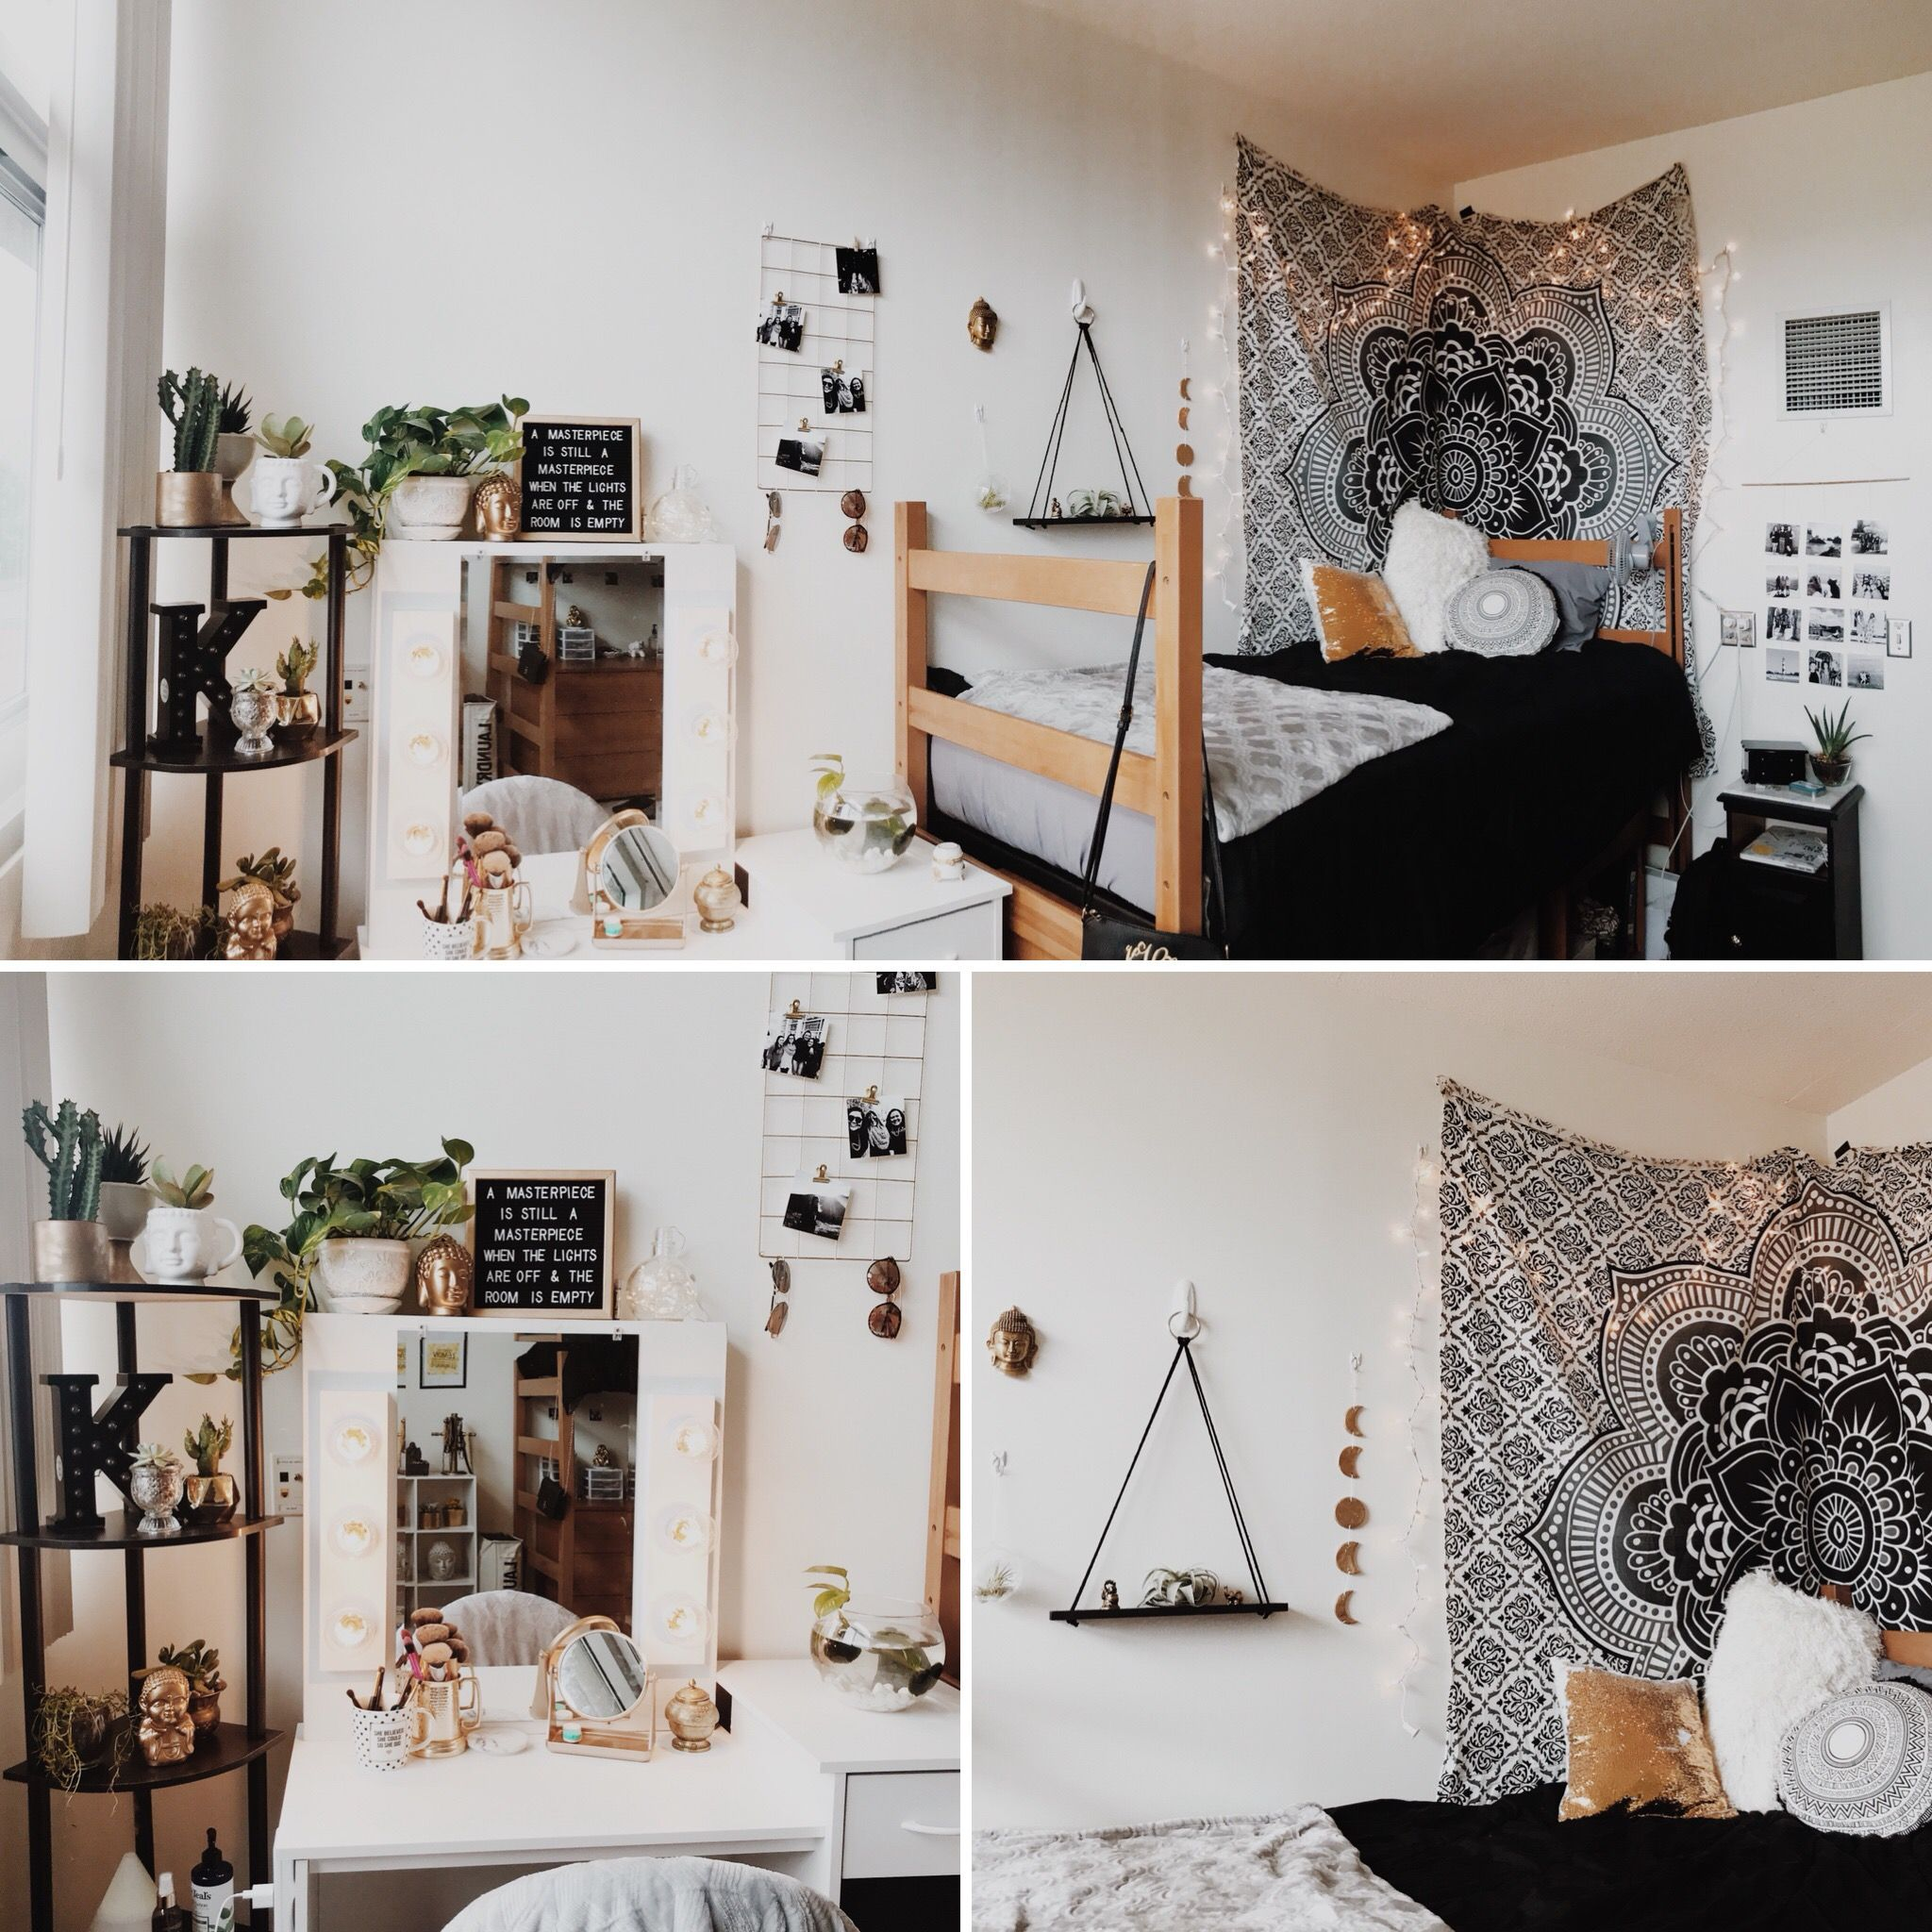 how to decorate a dorm room on a budget